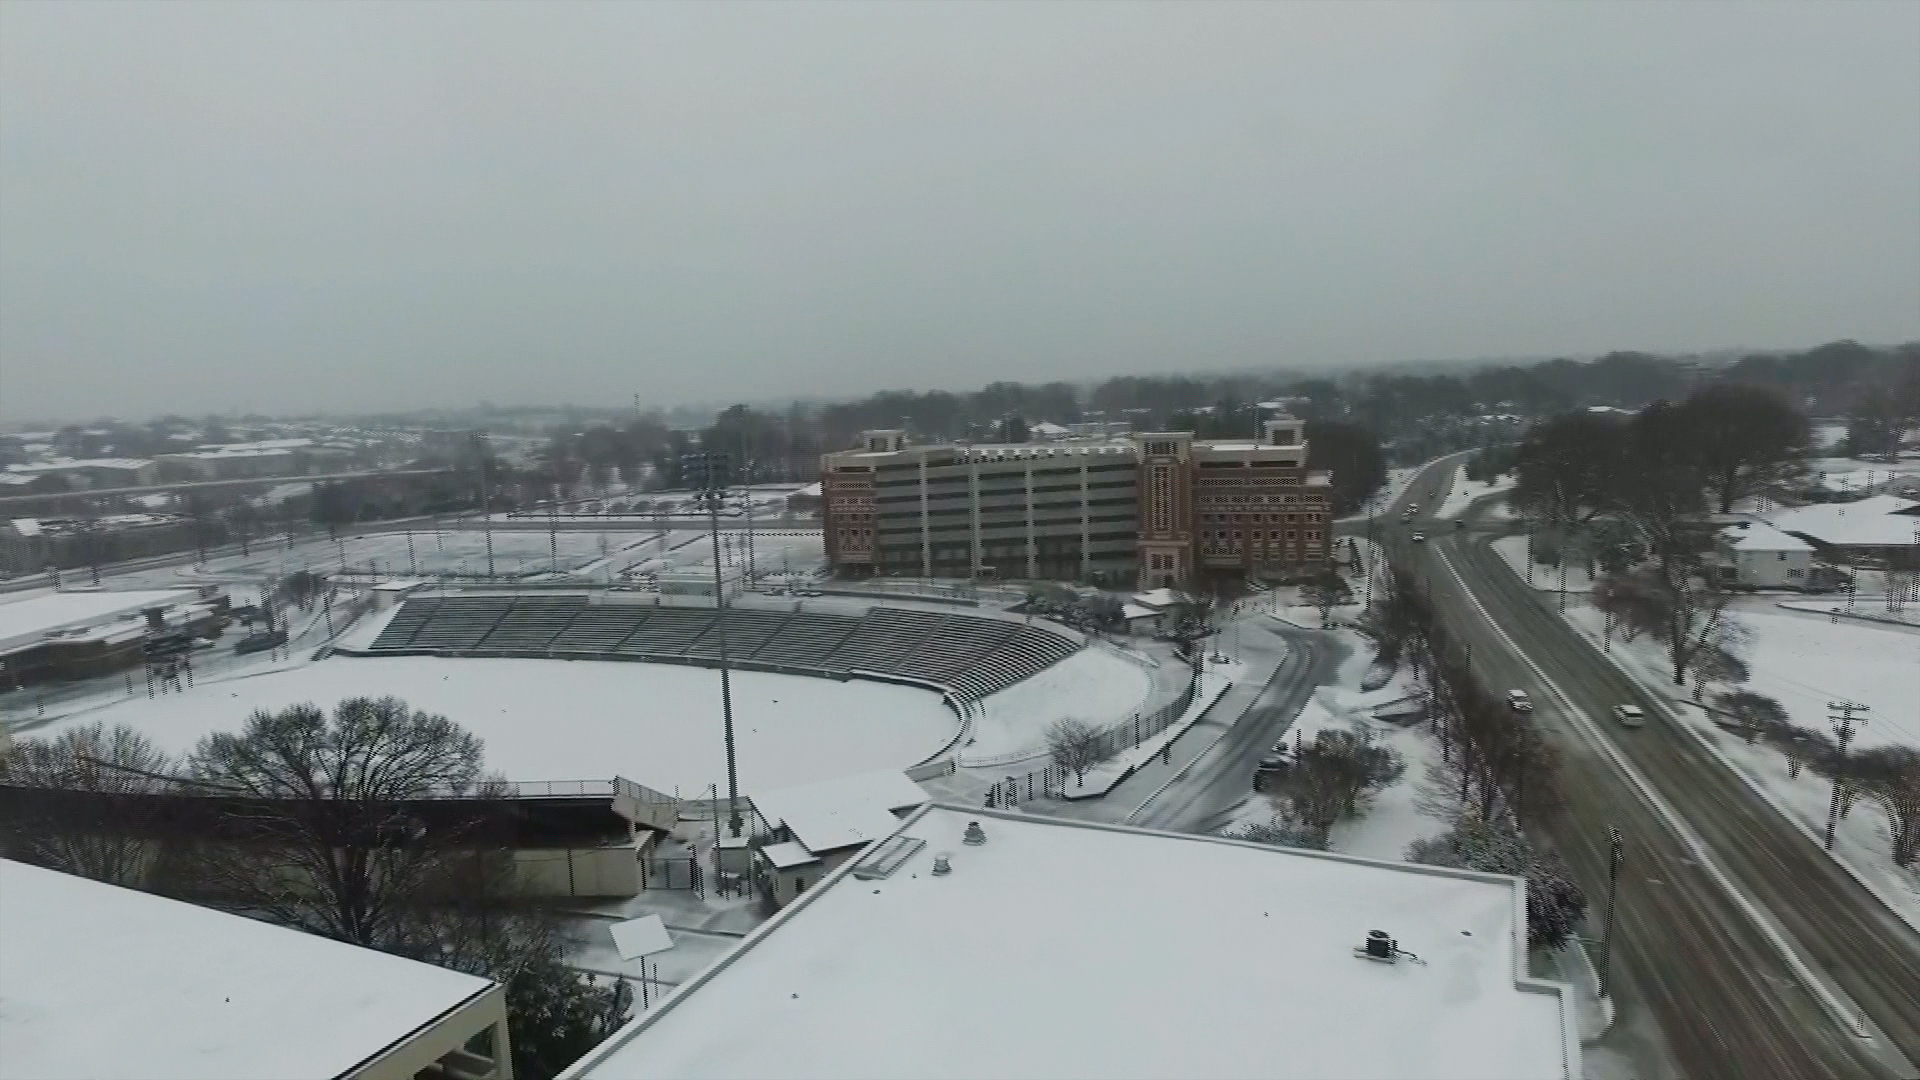 Drone Shows Snow Covered Charlotte, N C  - NBC News